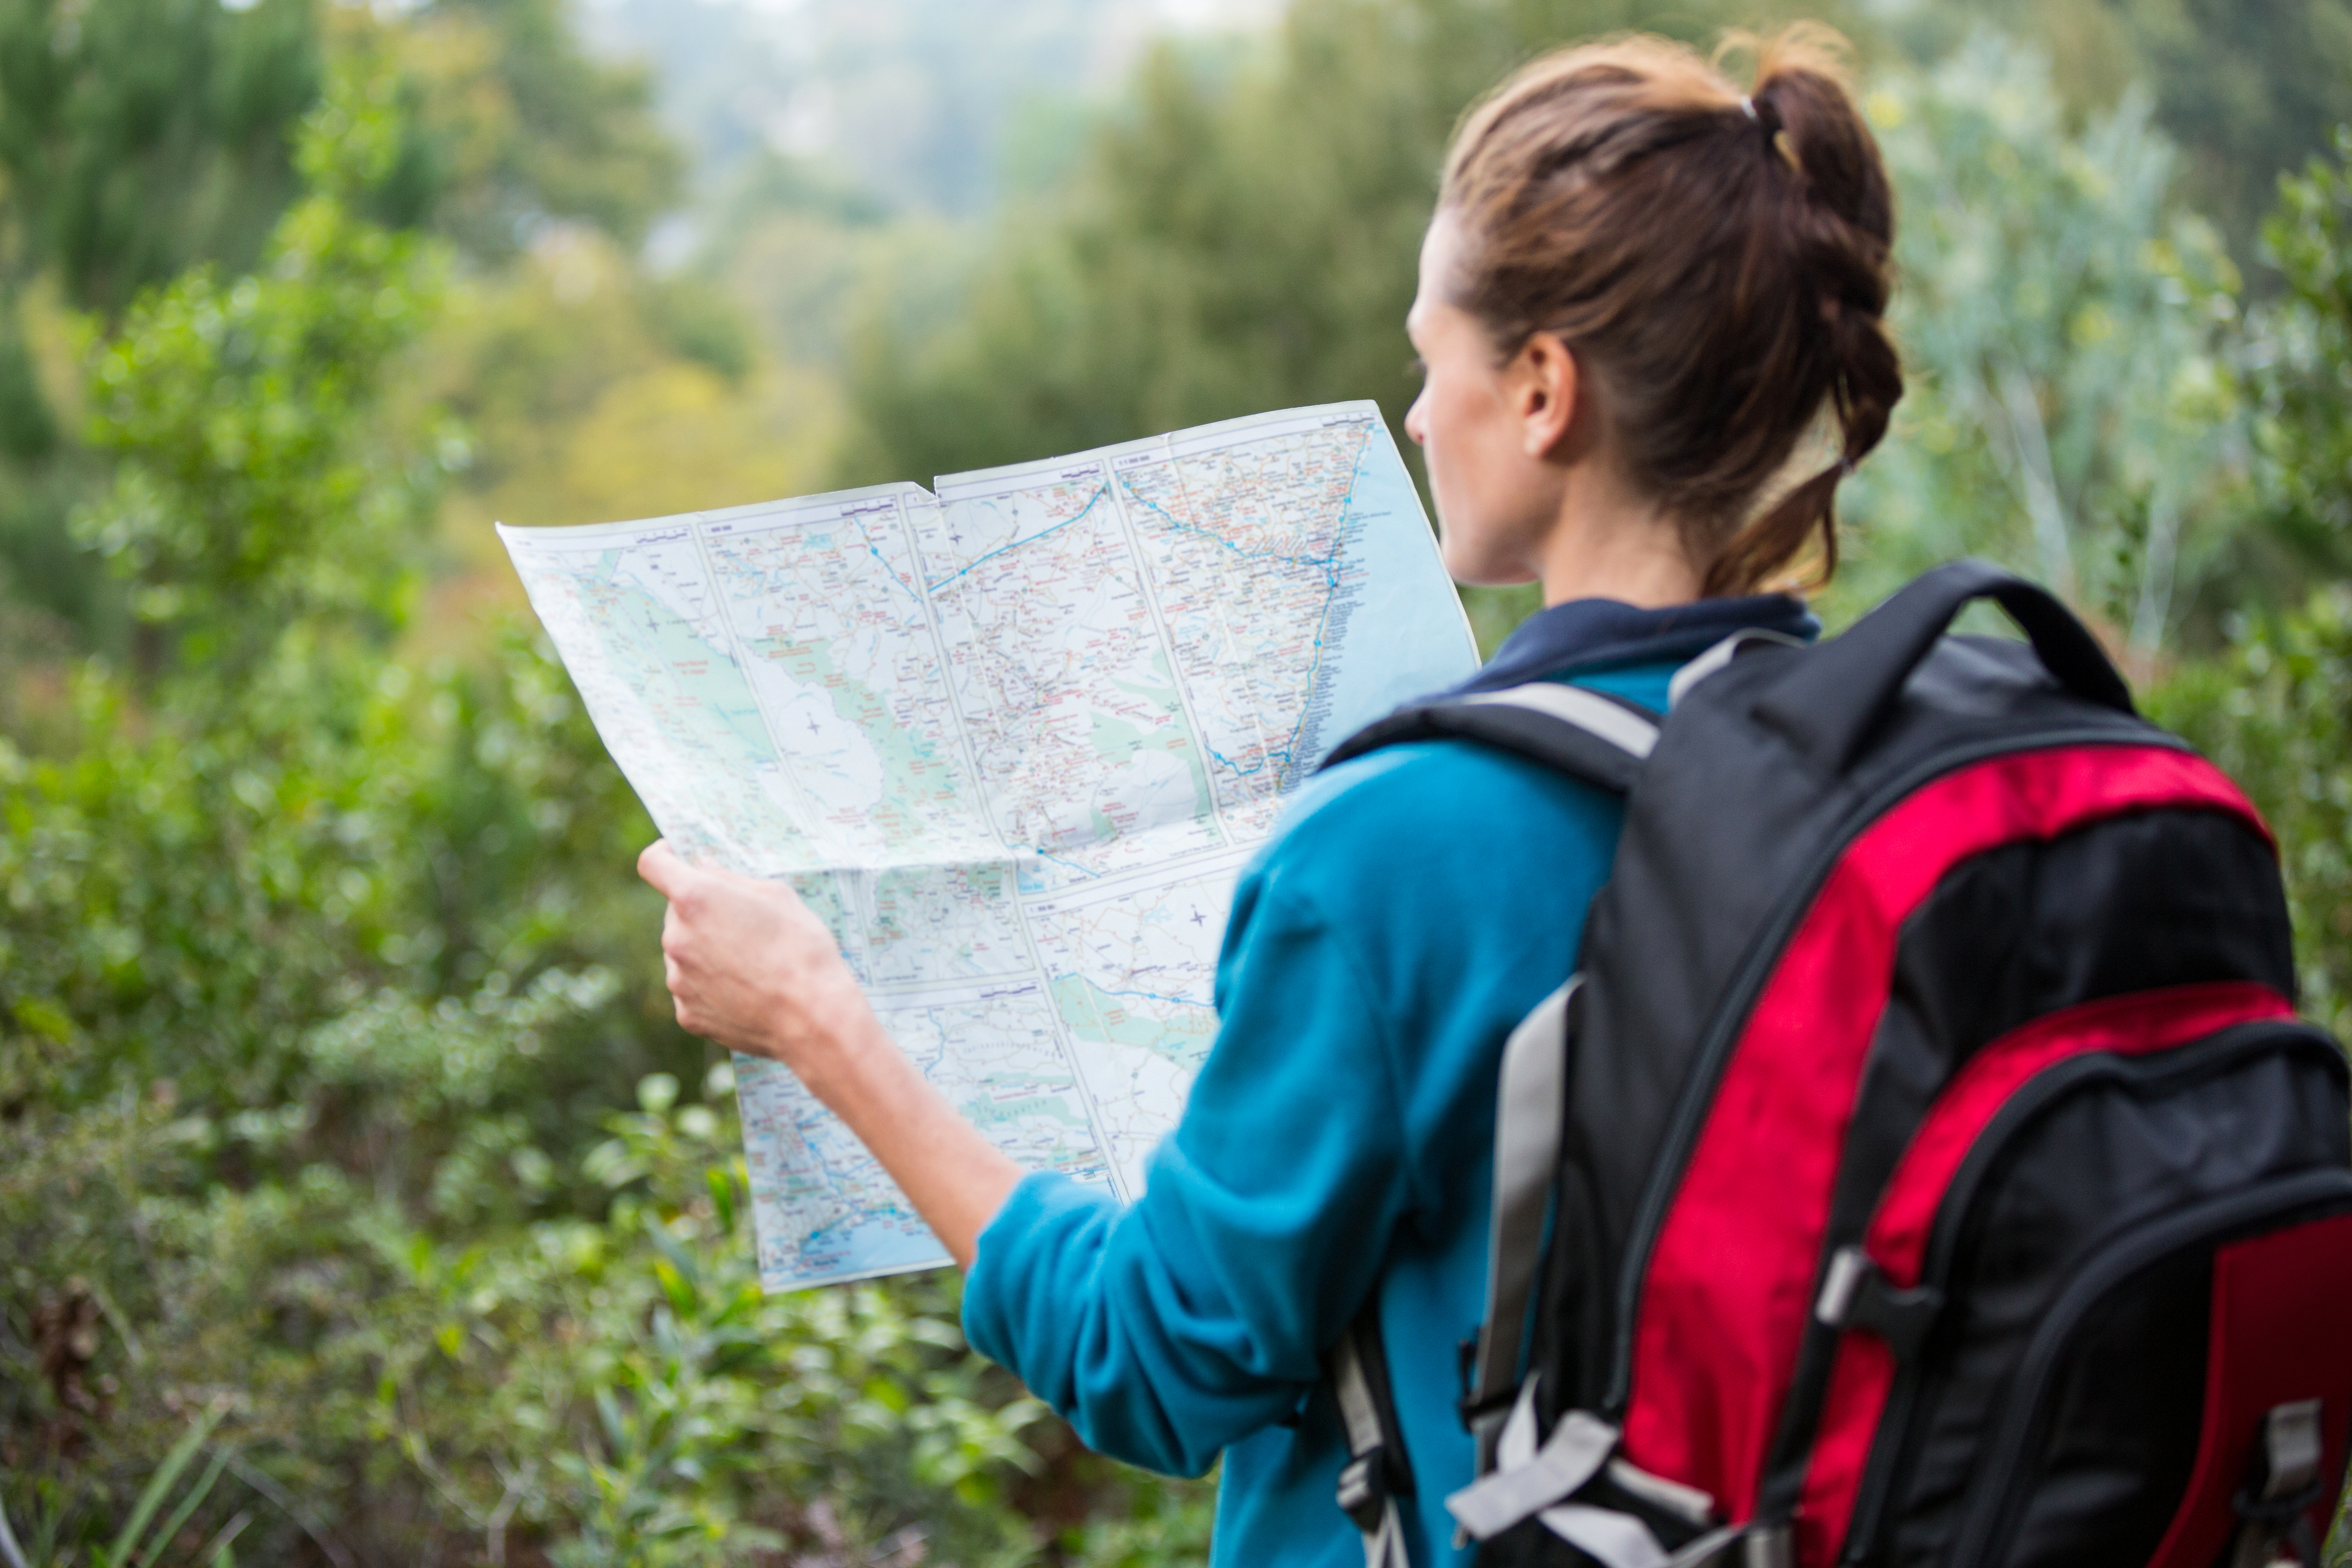 A woman from behind is consulting a map with a red backpack.jpg